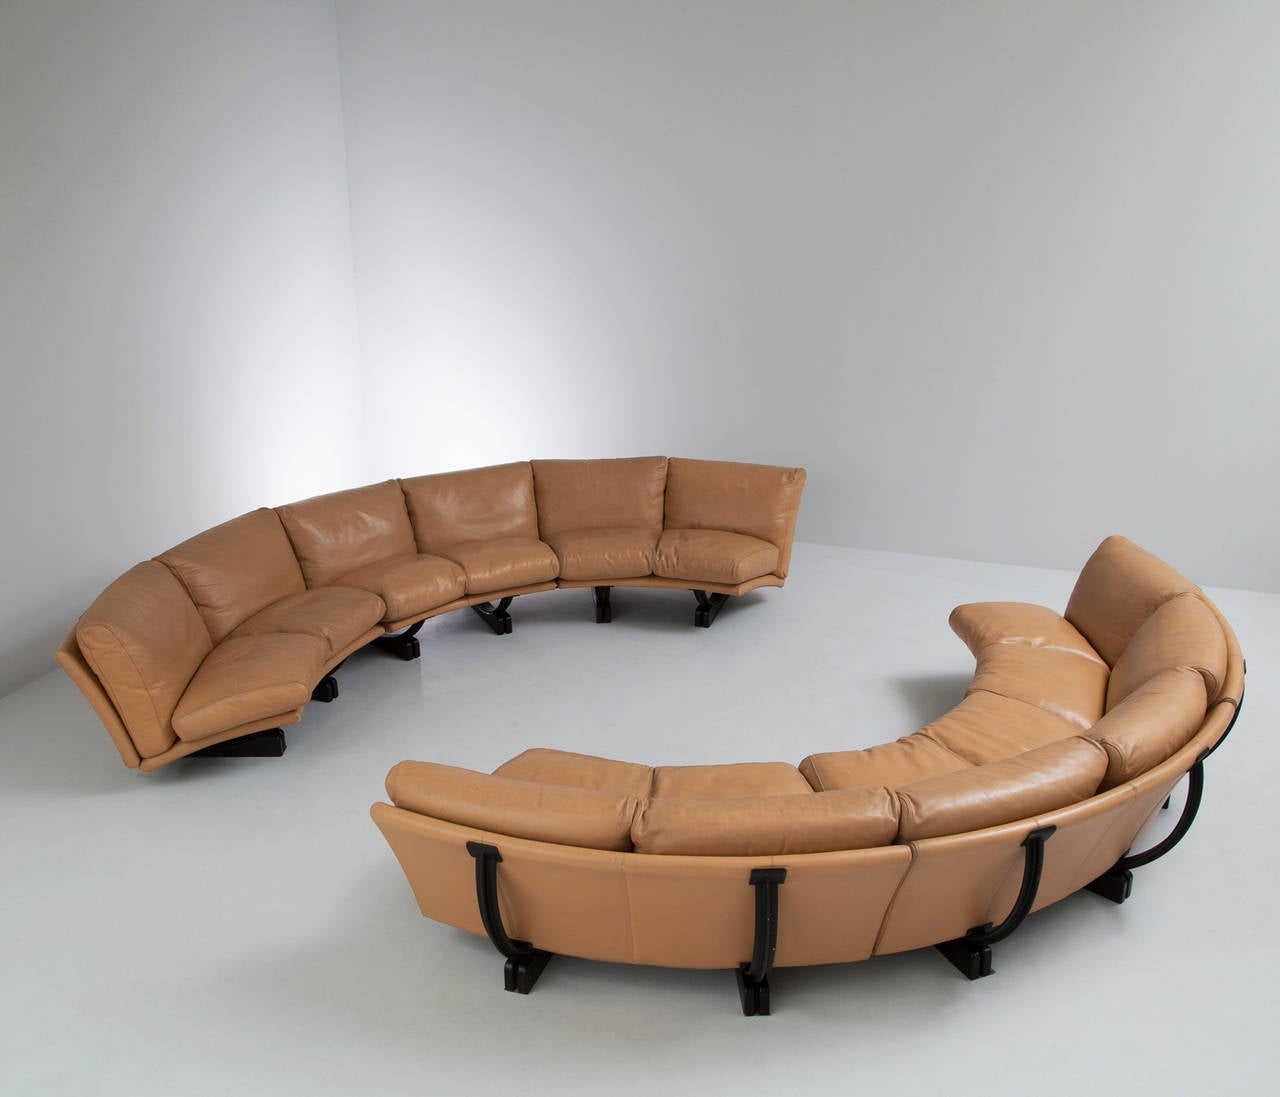 Extreme large curved sectional sofa by poltrona frau image 4 for Sectional furniture